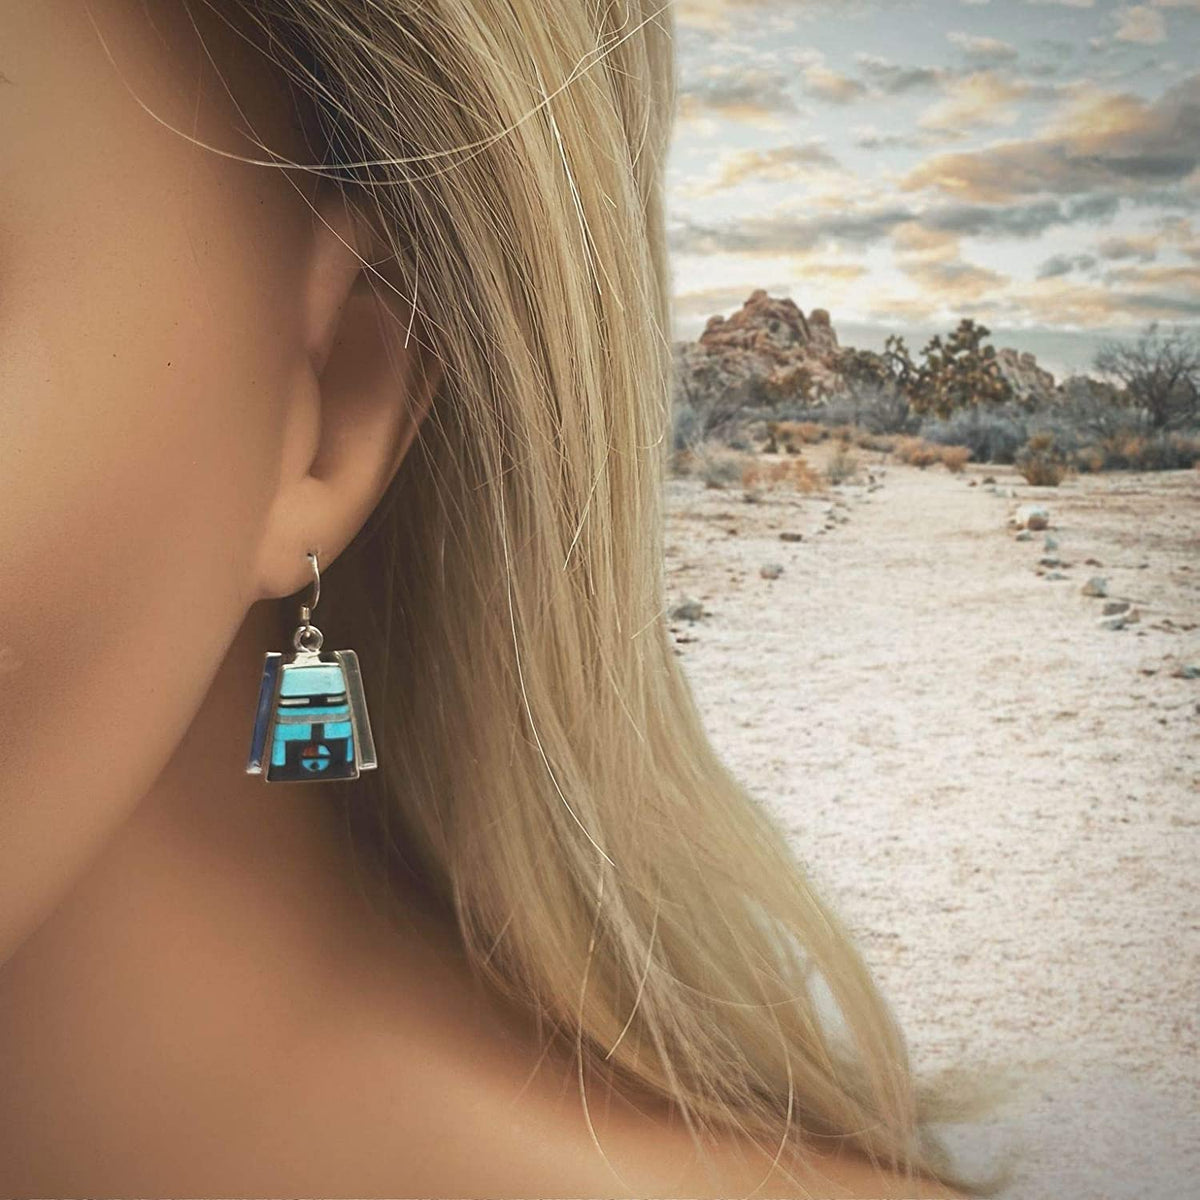 Genuine Sleeping Beauty Turquoise Zuni Sunface Earrings, 925 Sterling Silver, Native American USA Handmade,Artisan Signed Nickle Free, French Hook